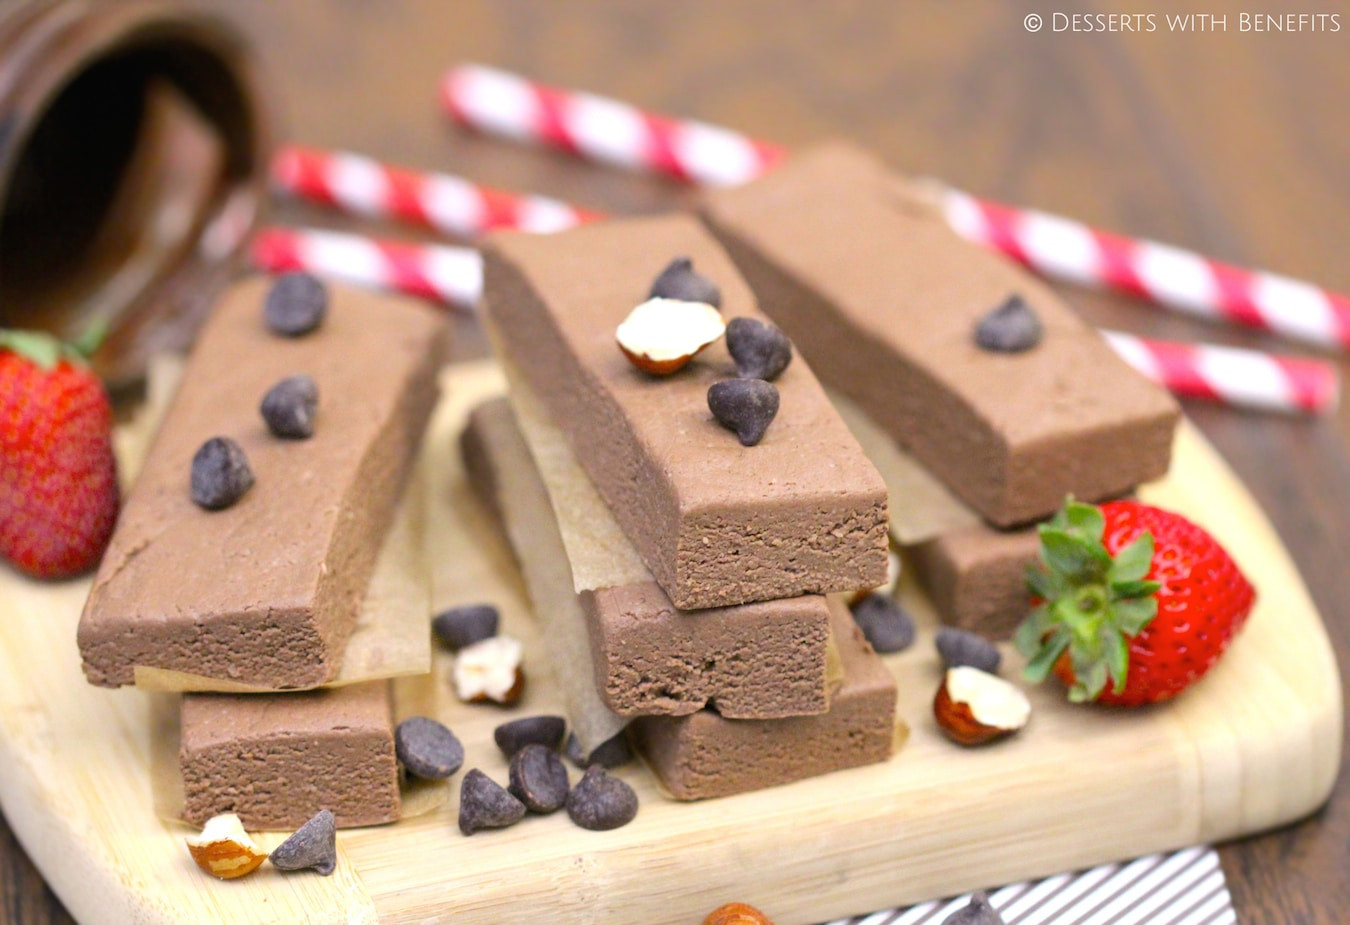 Healthy Low Fat Desserts  Healthy Nutella Fudge Protein Bars Desserts with Benefits